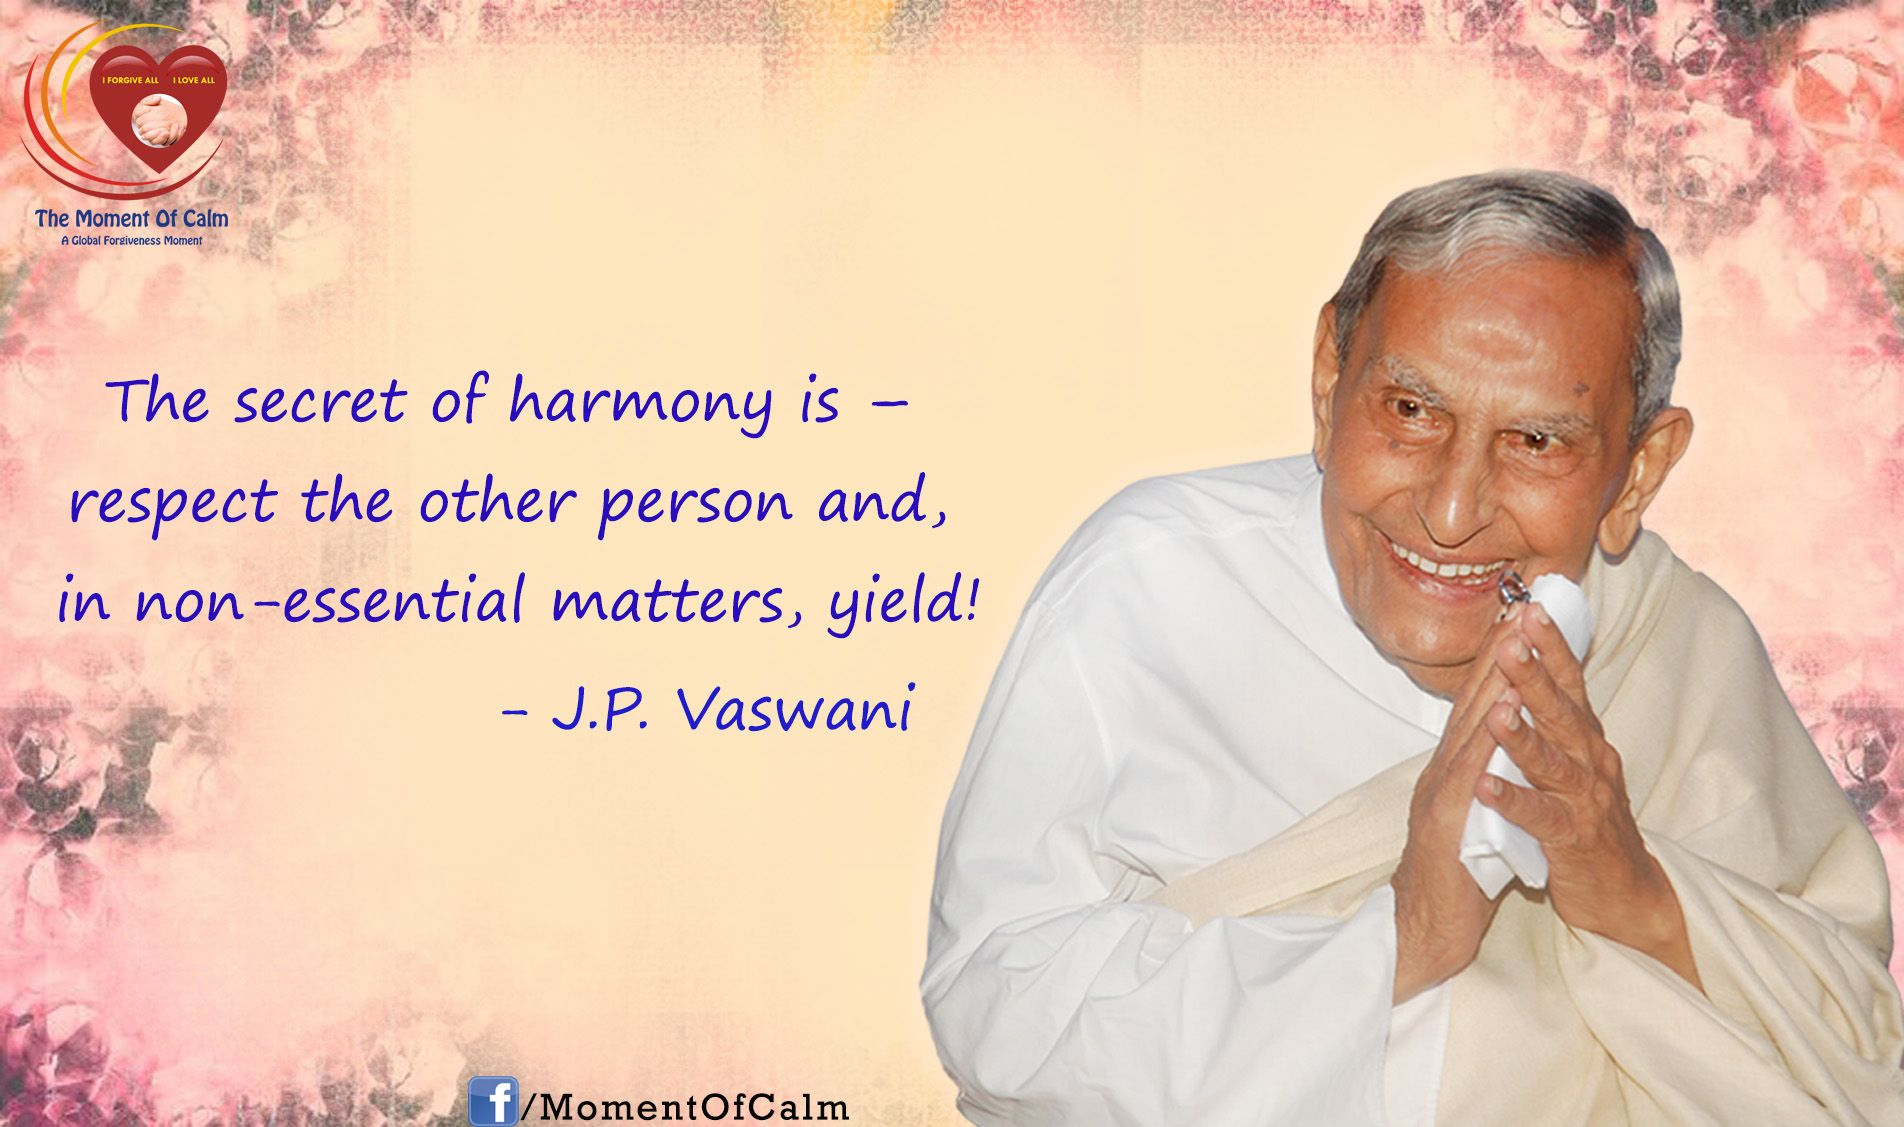 The secret of harmony is – respect the other person and, in non-essential matters, yield! - Dada J.P. Vaswani